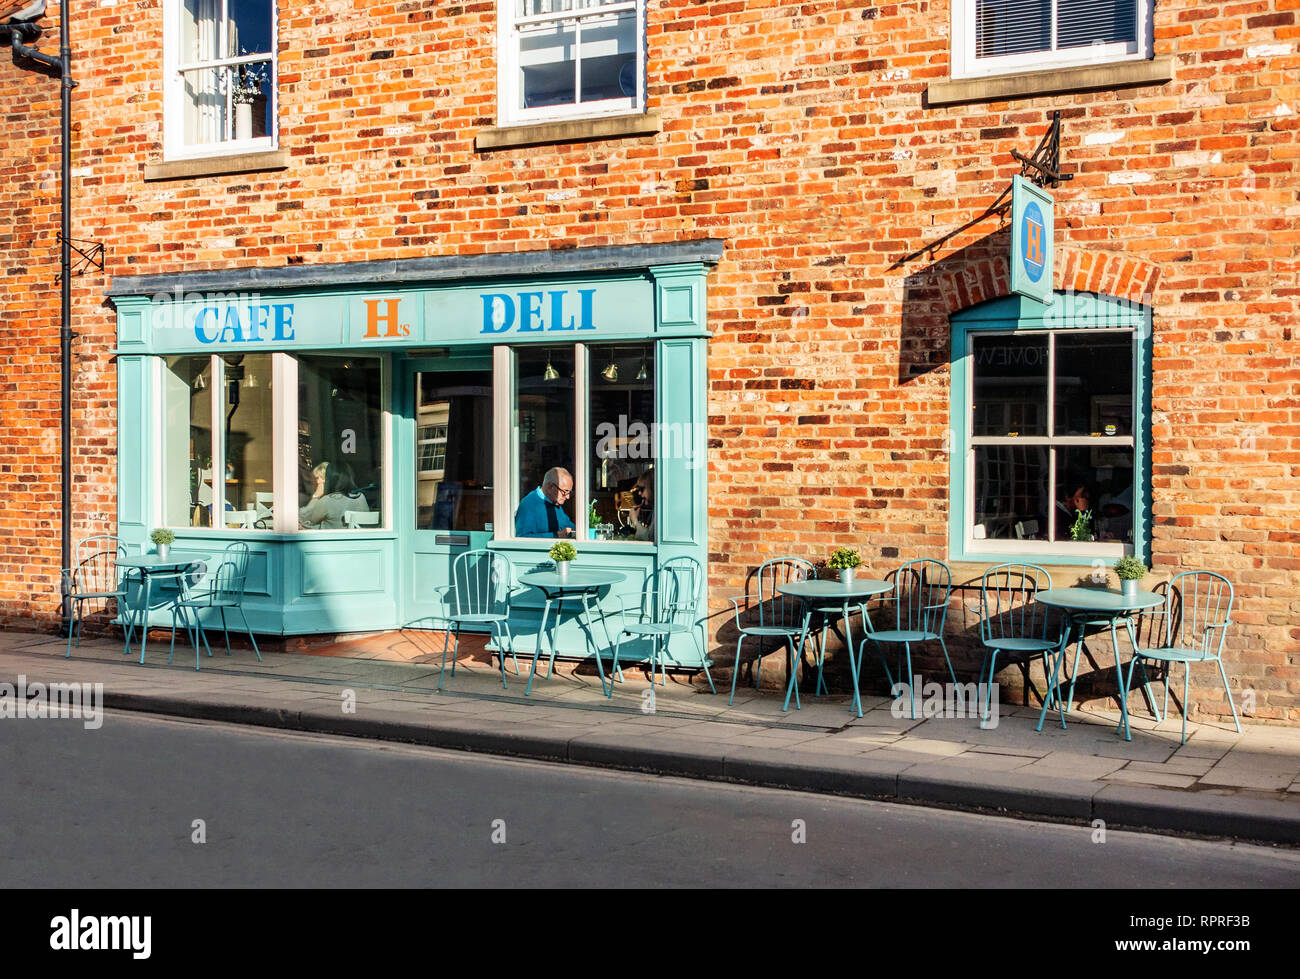 English Village H's Cafe Deli in Market Place, Tickhill in the Metropolitan Borough of Doncaster in South Yorkshire, England, Stock Photo